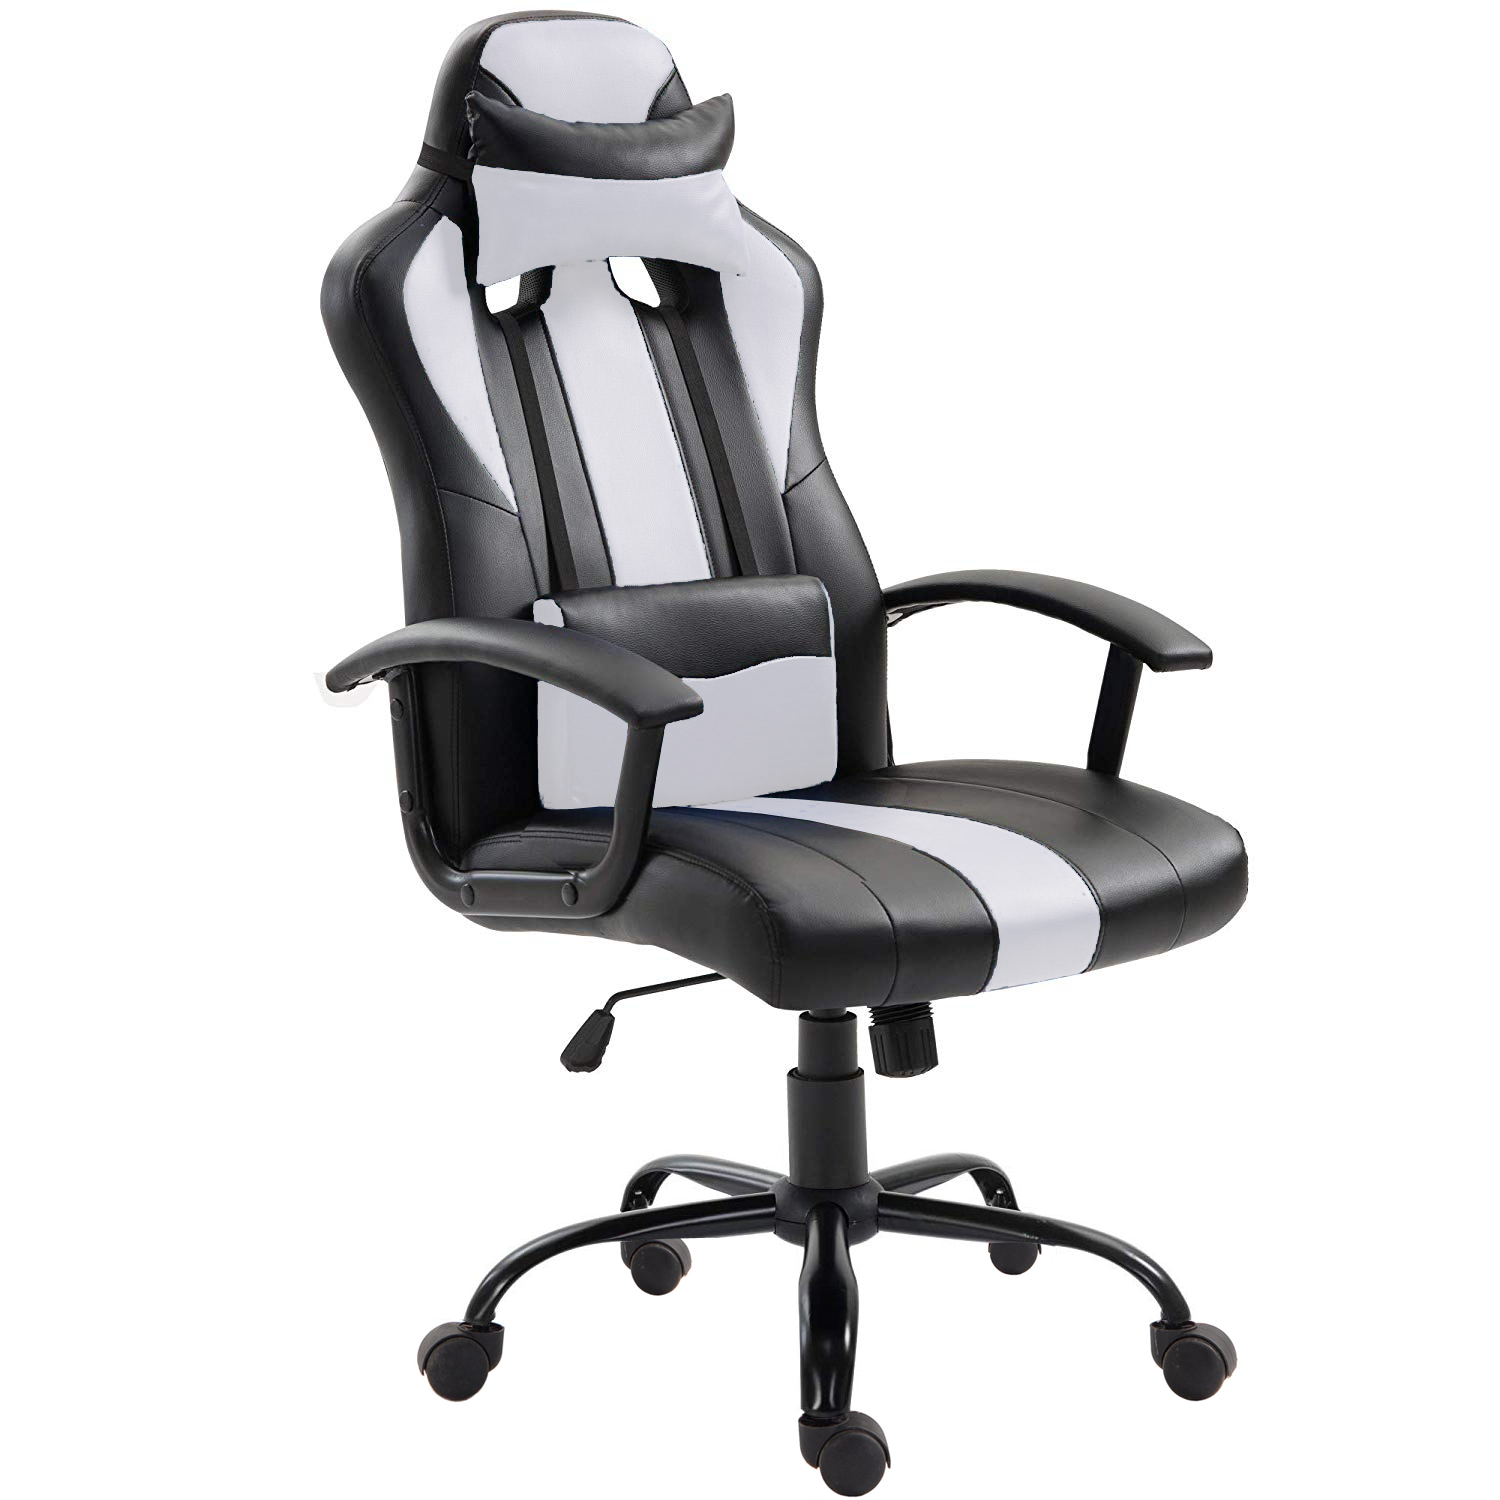 High Back Ergonomic Racing Car Style PU Leather upholstered Seat Gaming  Chair Removable headrest Pillow and Lumbar Cushion for Computer Desk,  Office,